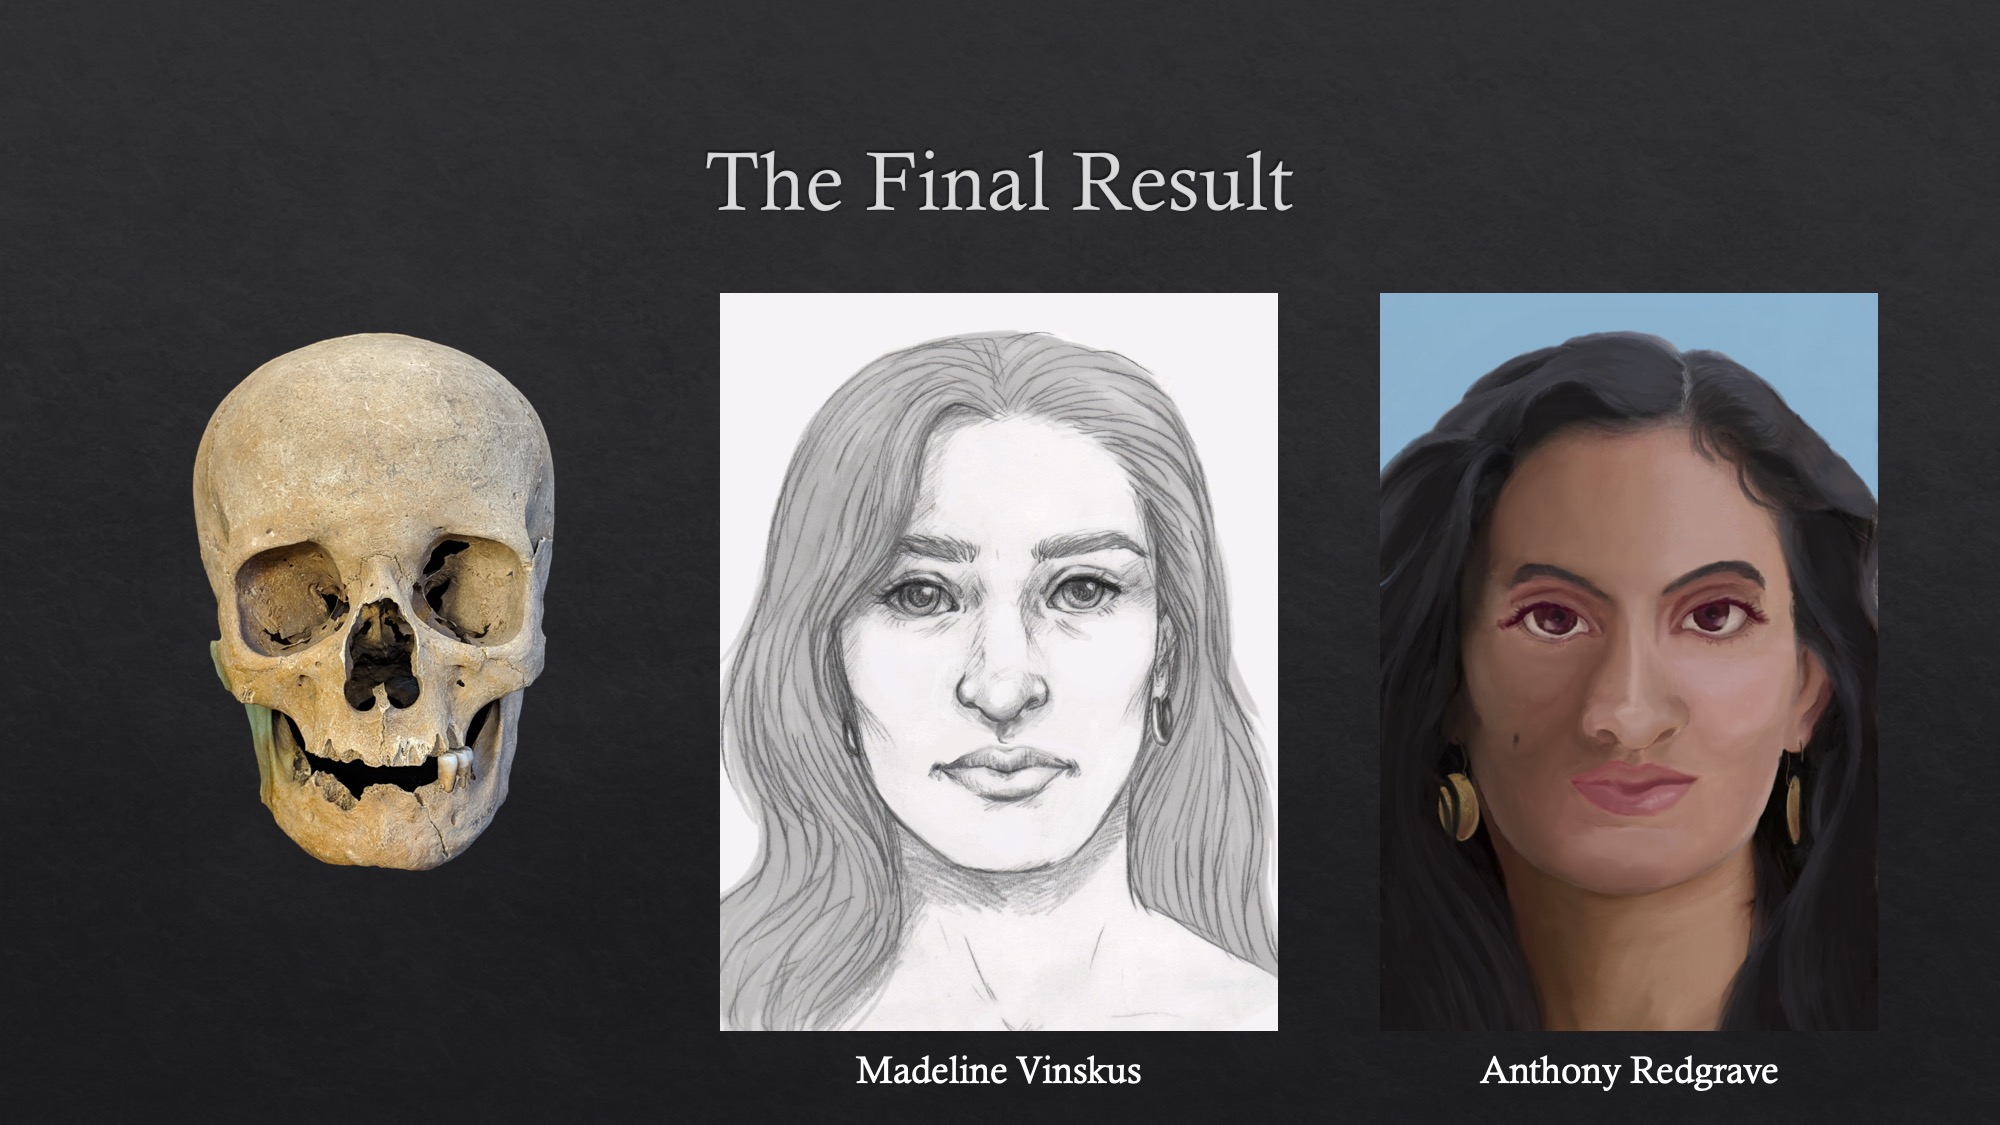 Anthony Redgrave's approximation was included in 'Caesarea Maritima: Facial Approximation' by Lilia Vinskus, in collaboration with Madeline Vinskus (presentation at University of New Hampshire 2019)